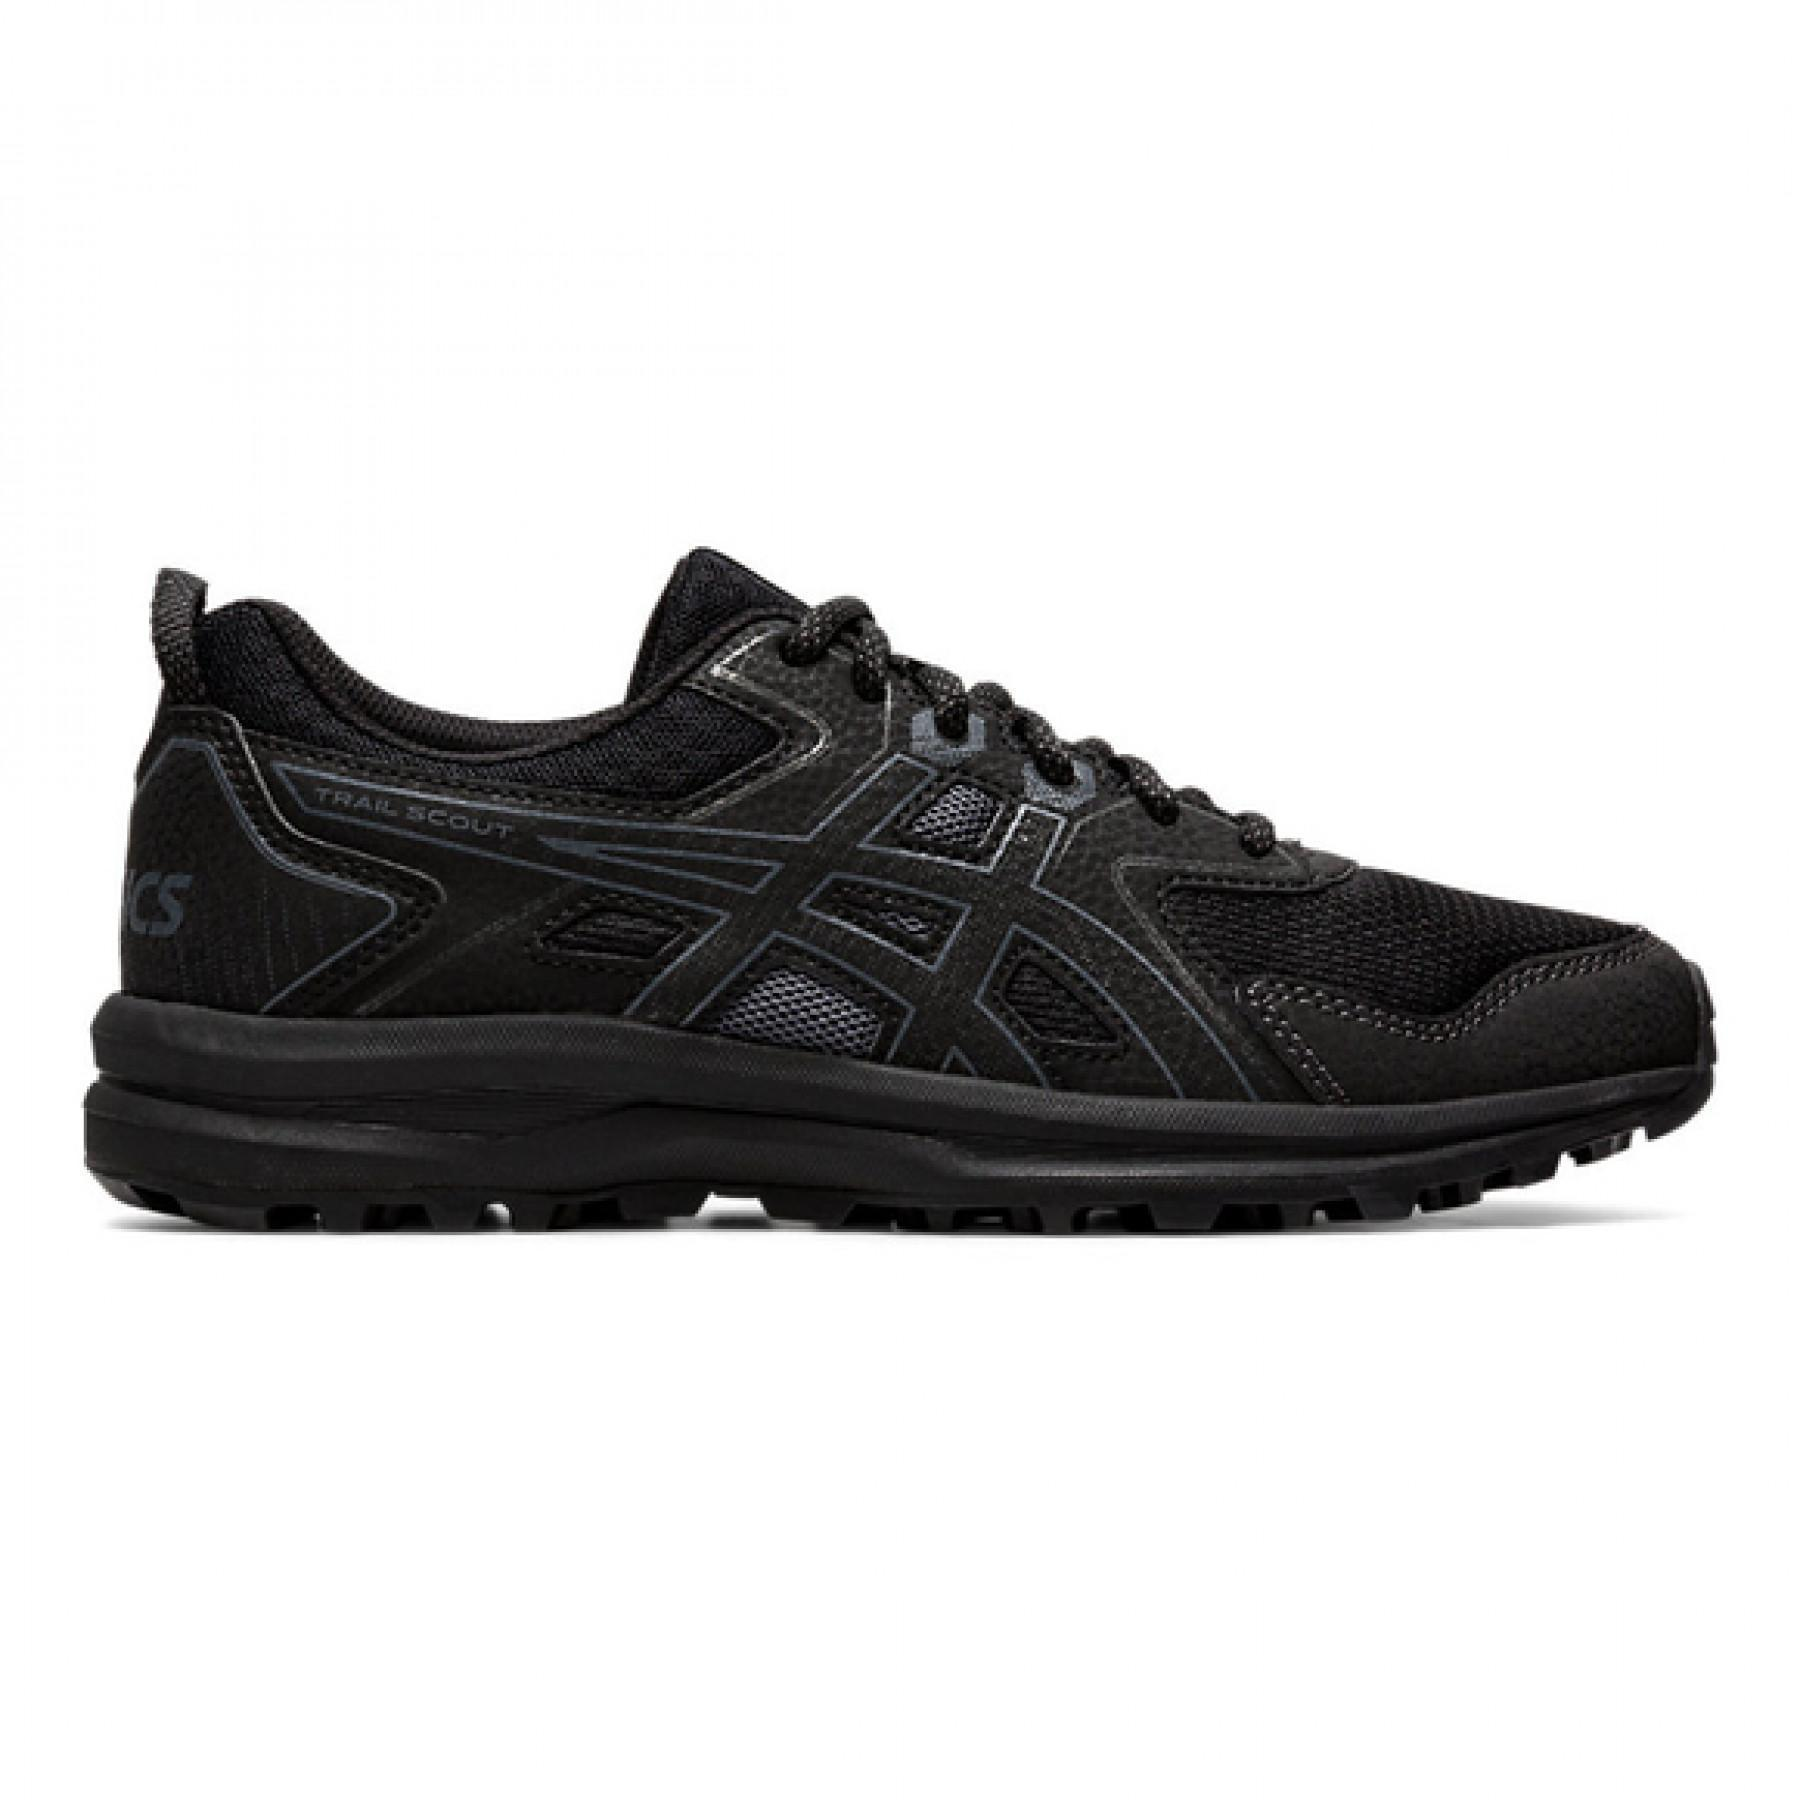 Chaussures femme Asics Trailout